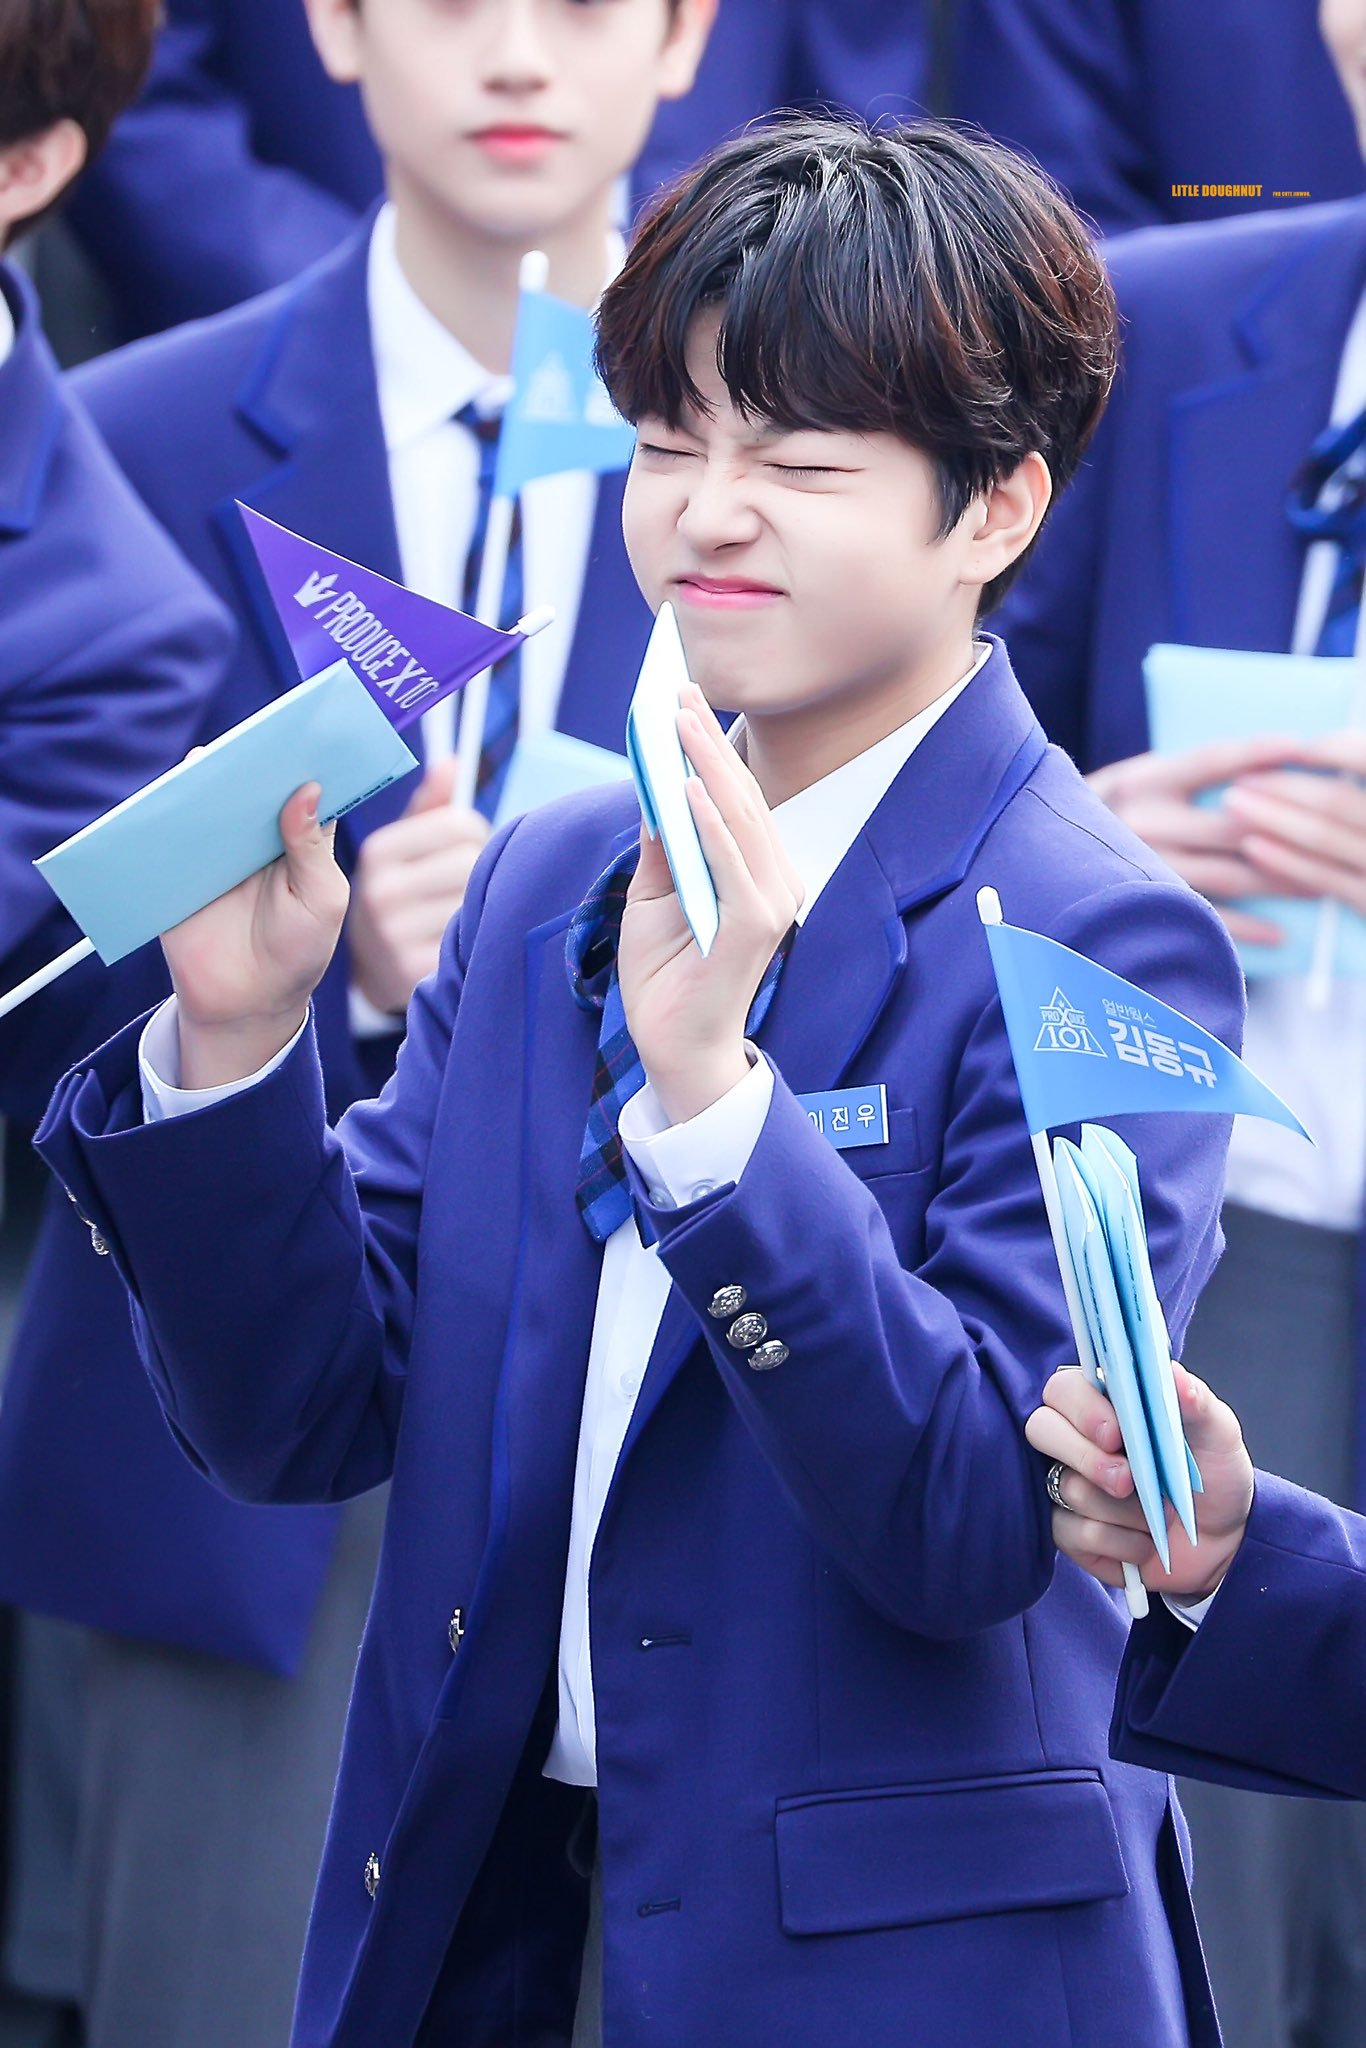 produce x 101, produce x 101 trainees, produce x 101 age, produce x 101 height, produce x 101 center, produce x 101 members, produce x 101 lee jinwoo, lee jinwoo, maroo lee jinwoo,